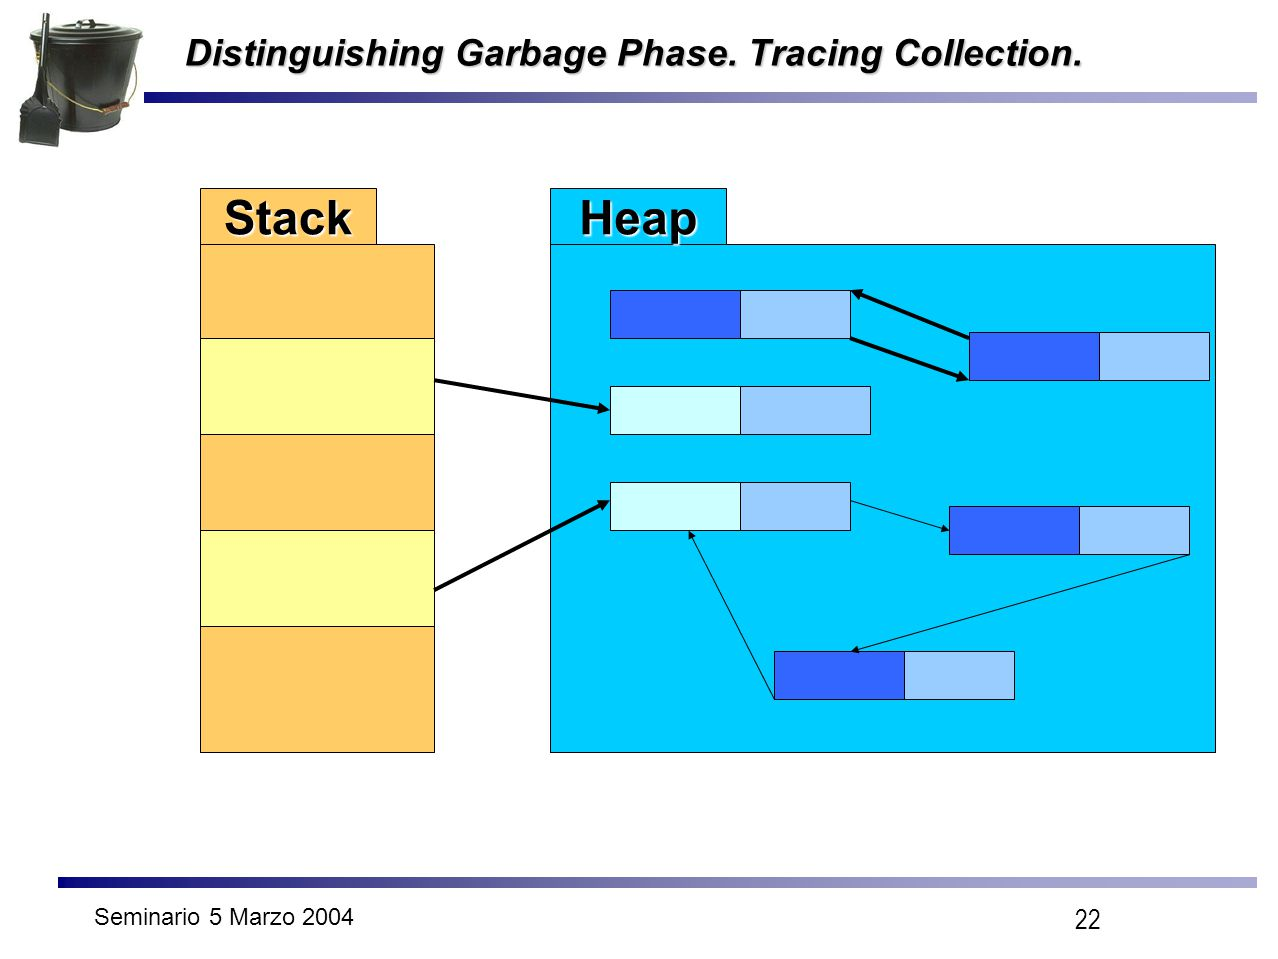 Seminario 5 Marzo 2004 22 Distinguishing Garbage Phase. Tracing Collection. StackHeap